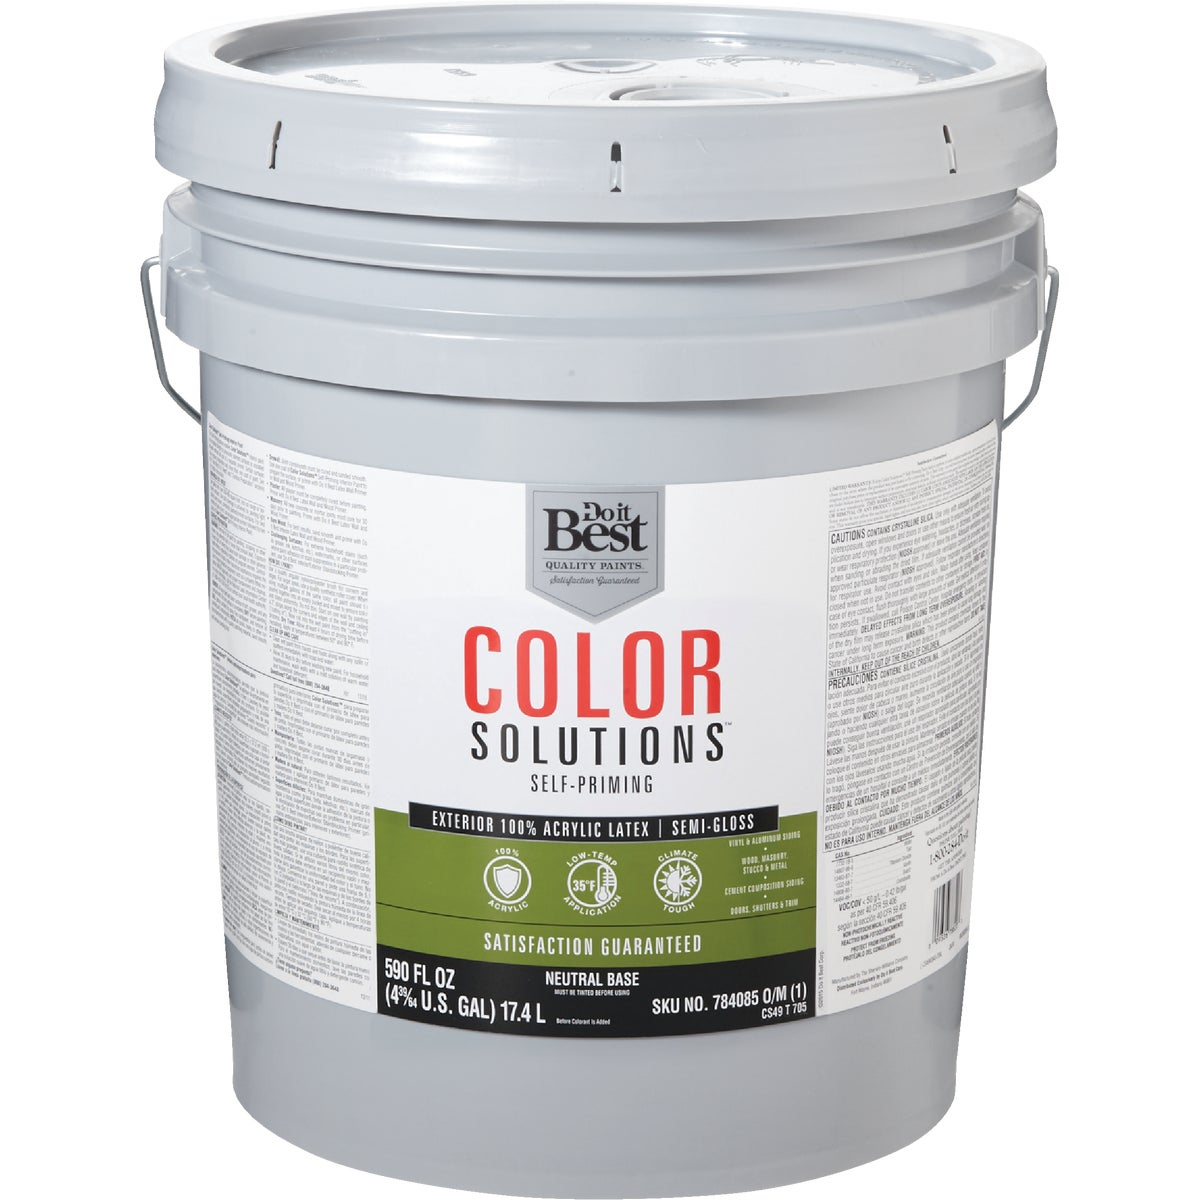 EXT S/G NEUTRAL BS PAINT - CS49T0705-20 by Do it Best